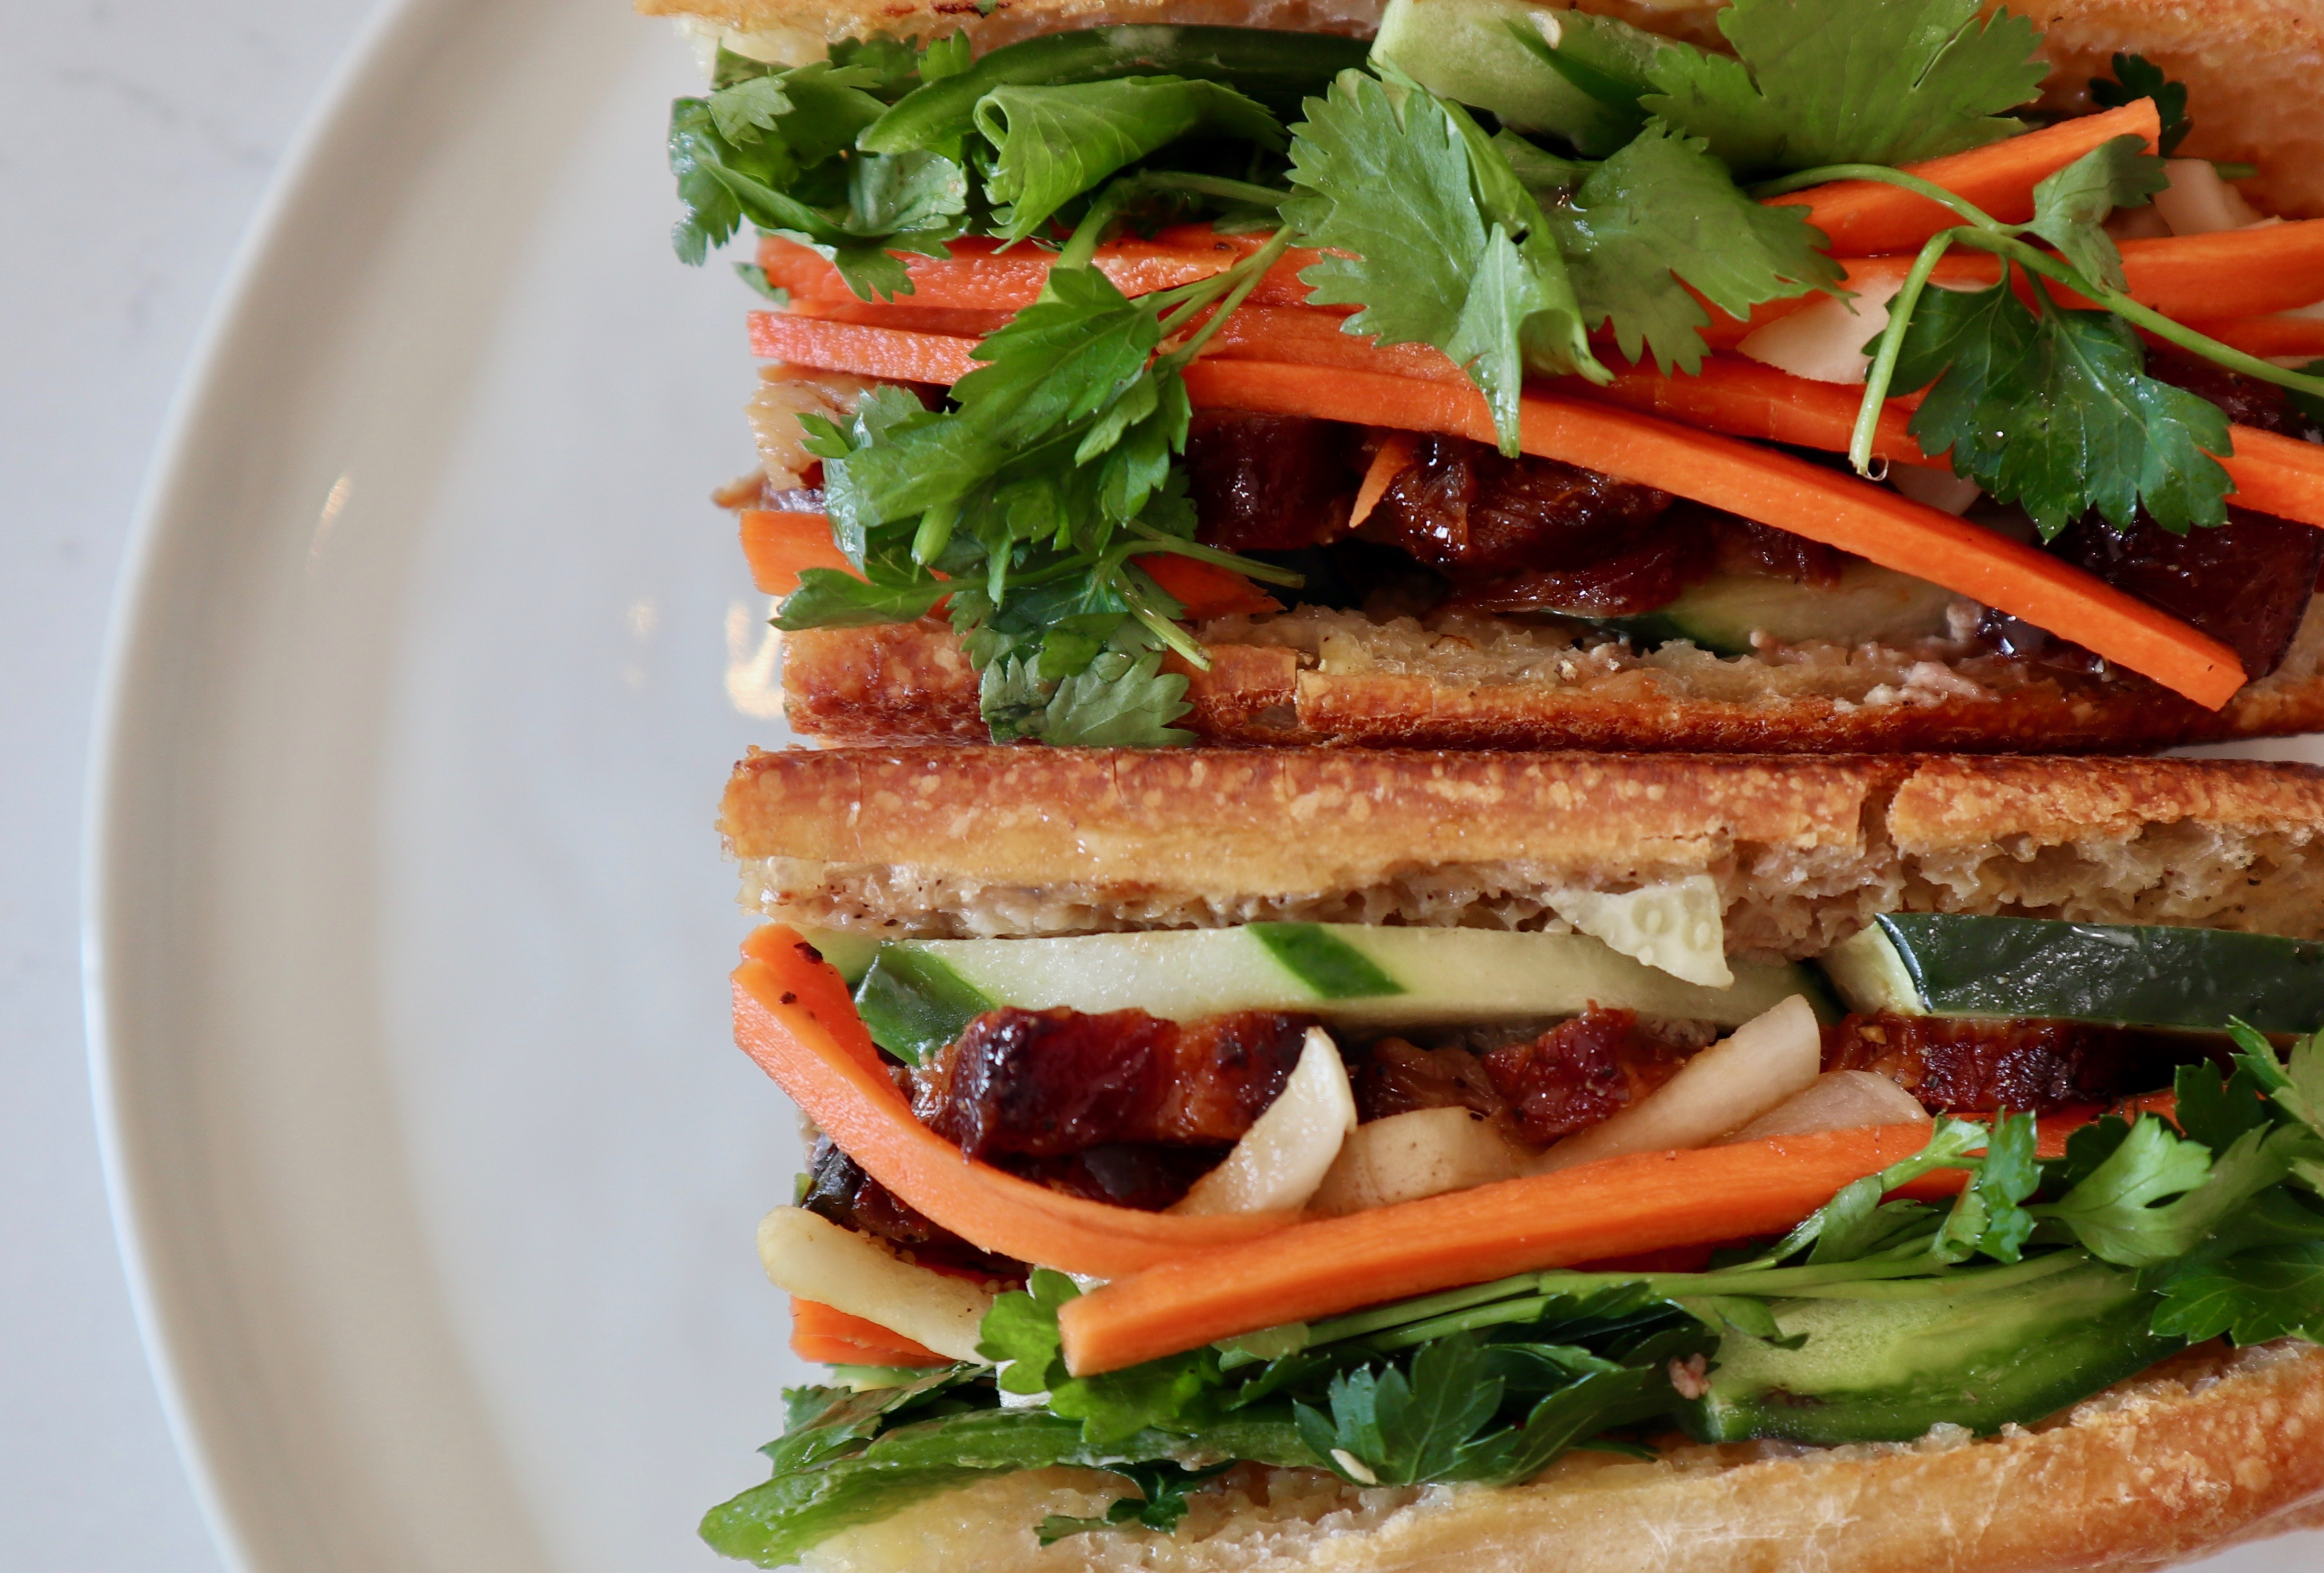 overhead shot of banh mi sandwich, close up on right side of a white plate .topped with shredded carrots, cilantro, and onions.